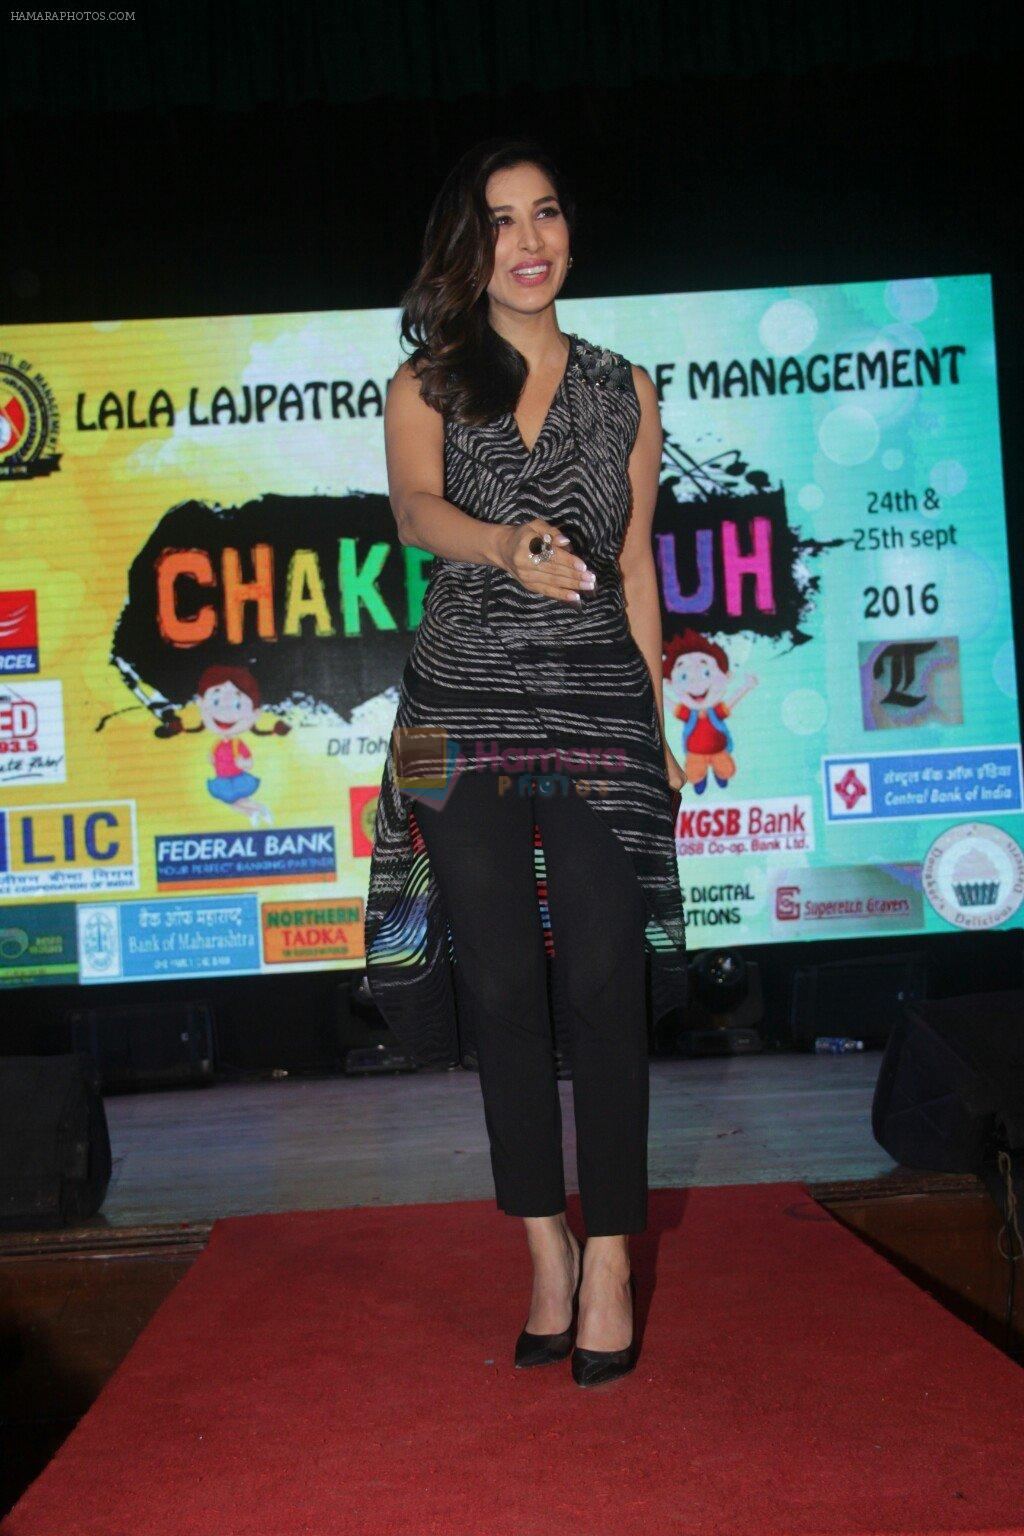 Sophie Choudry at lala lajpatrai college Fest on 25th Sept 2016